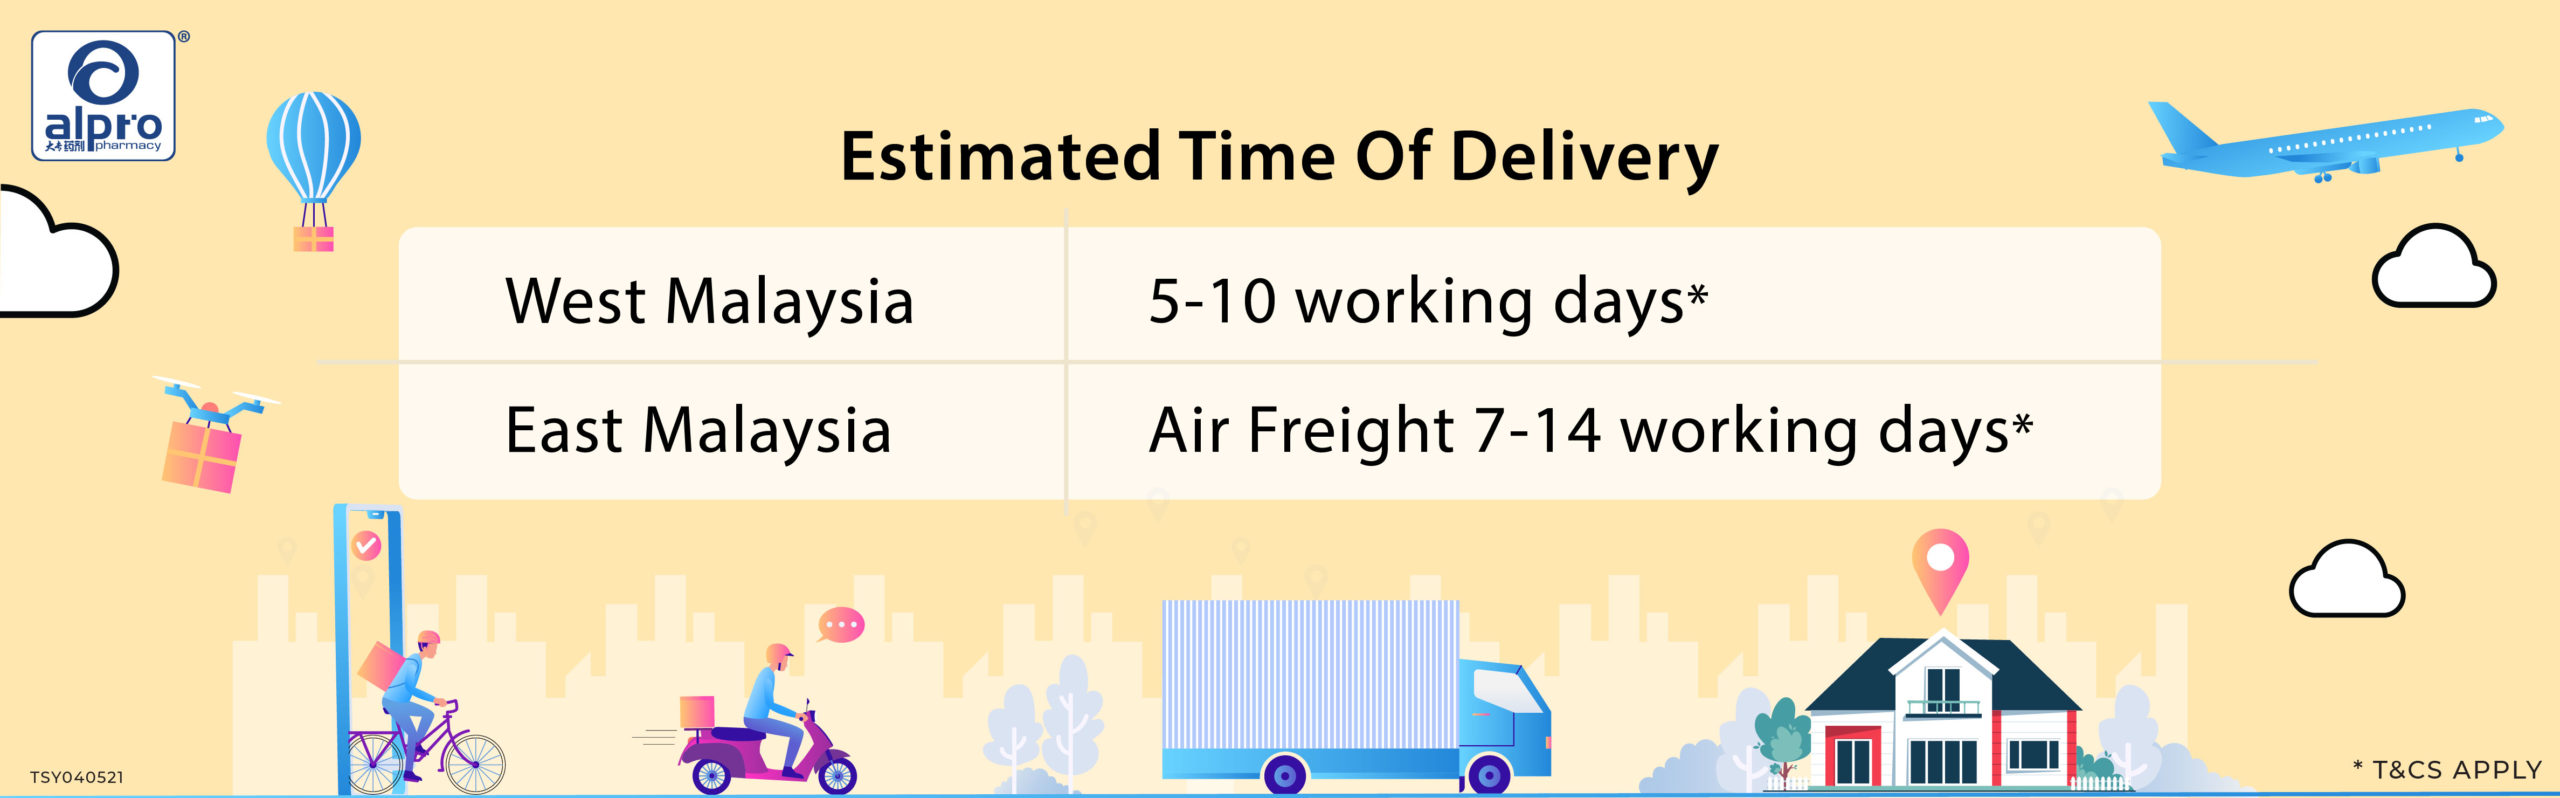 free delivery_2_Estimated Time Of Delivery